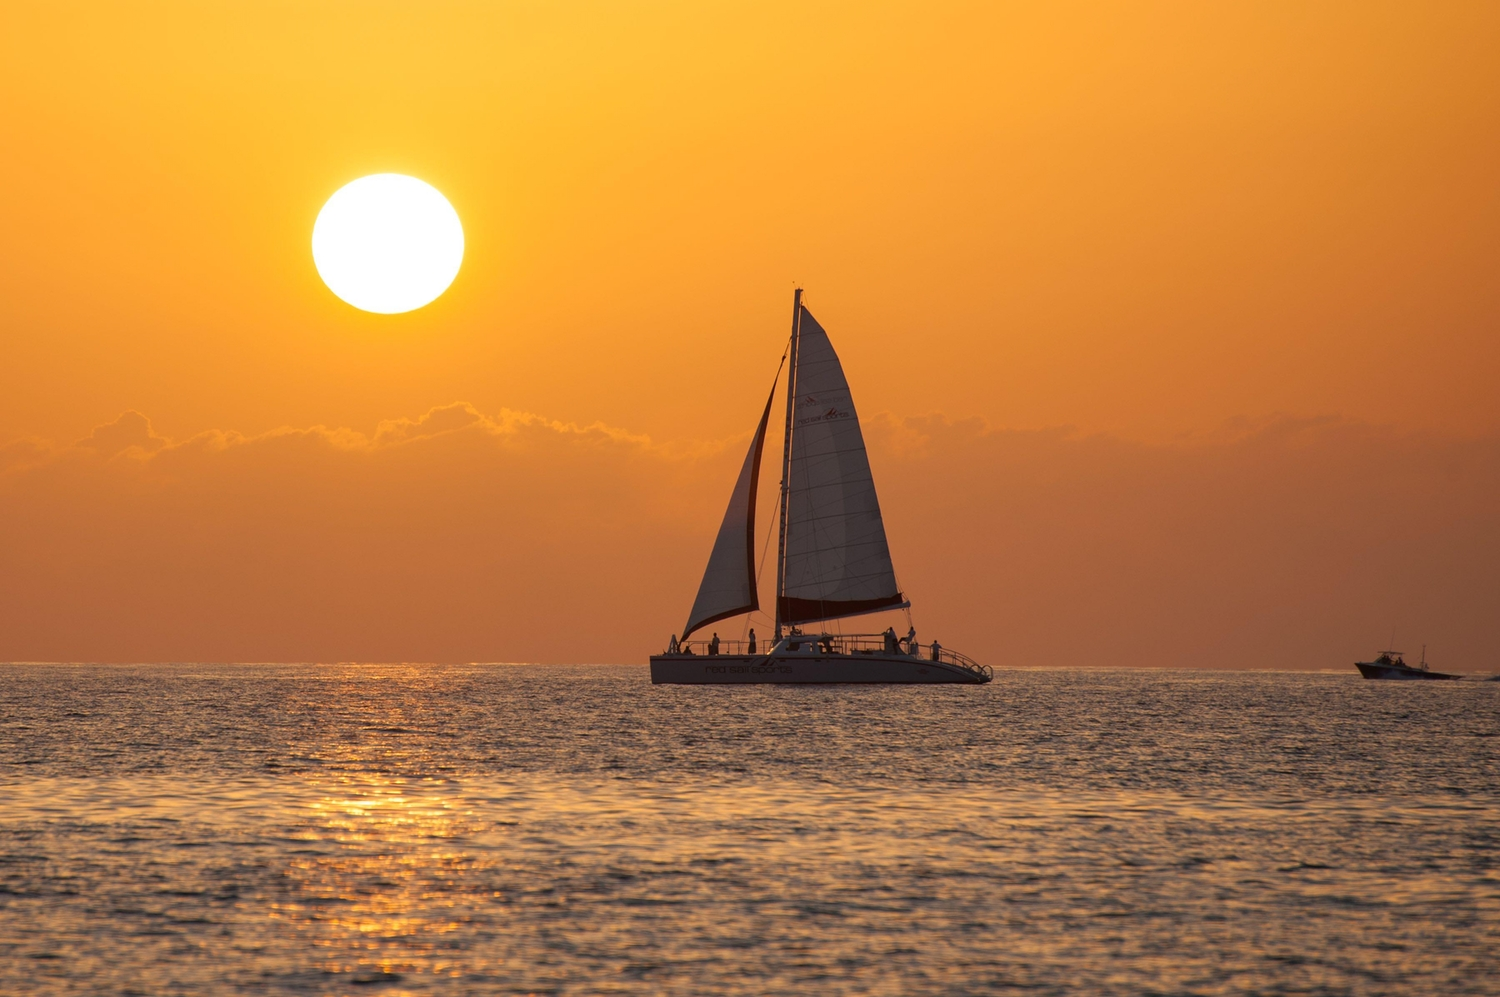 Sailing boat out in the ocean during sunset